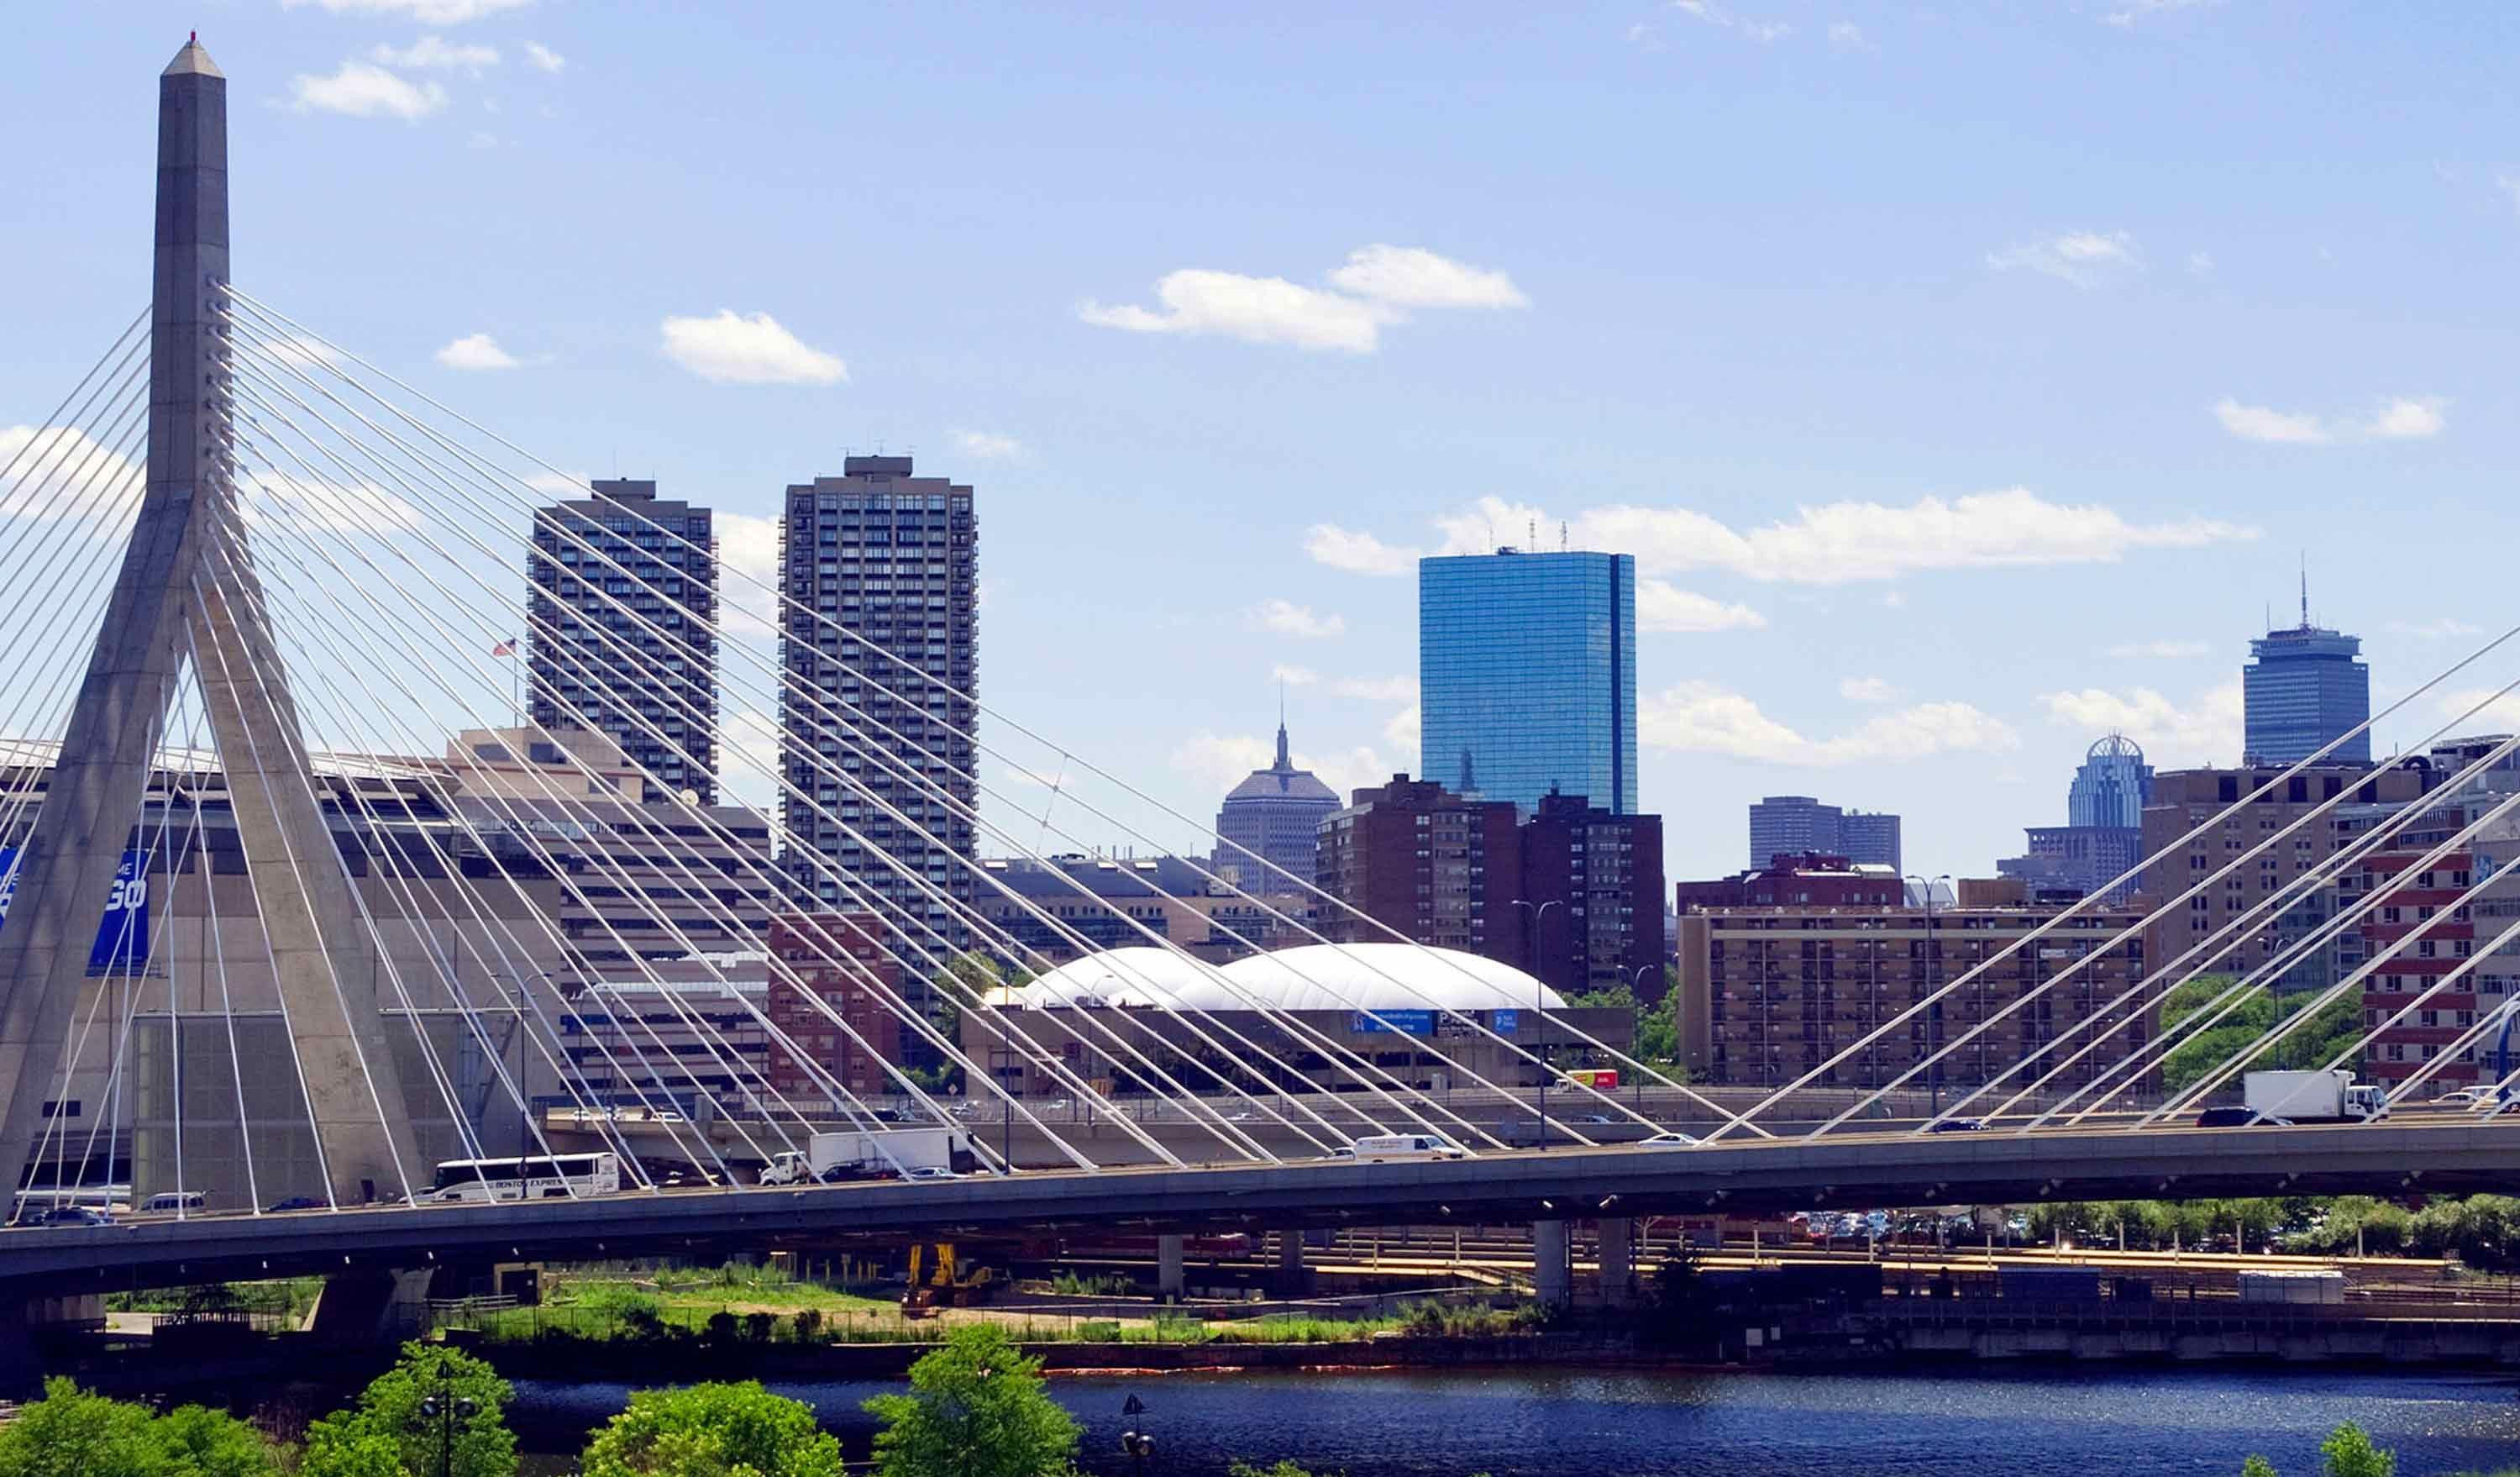 Photo of Zakim Bridge and Boston Skyline